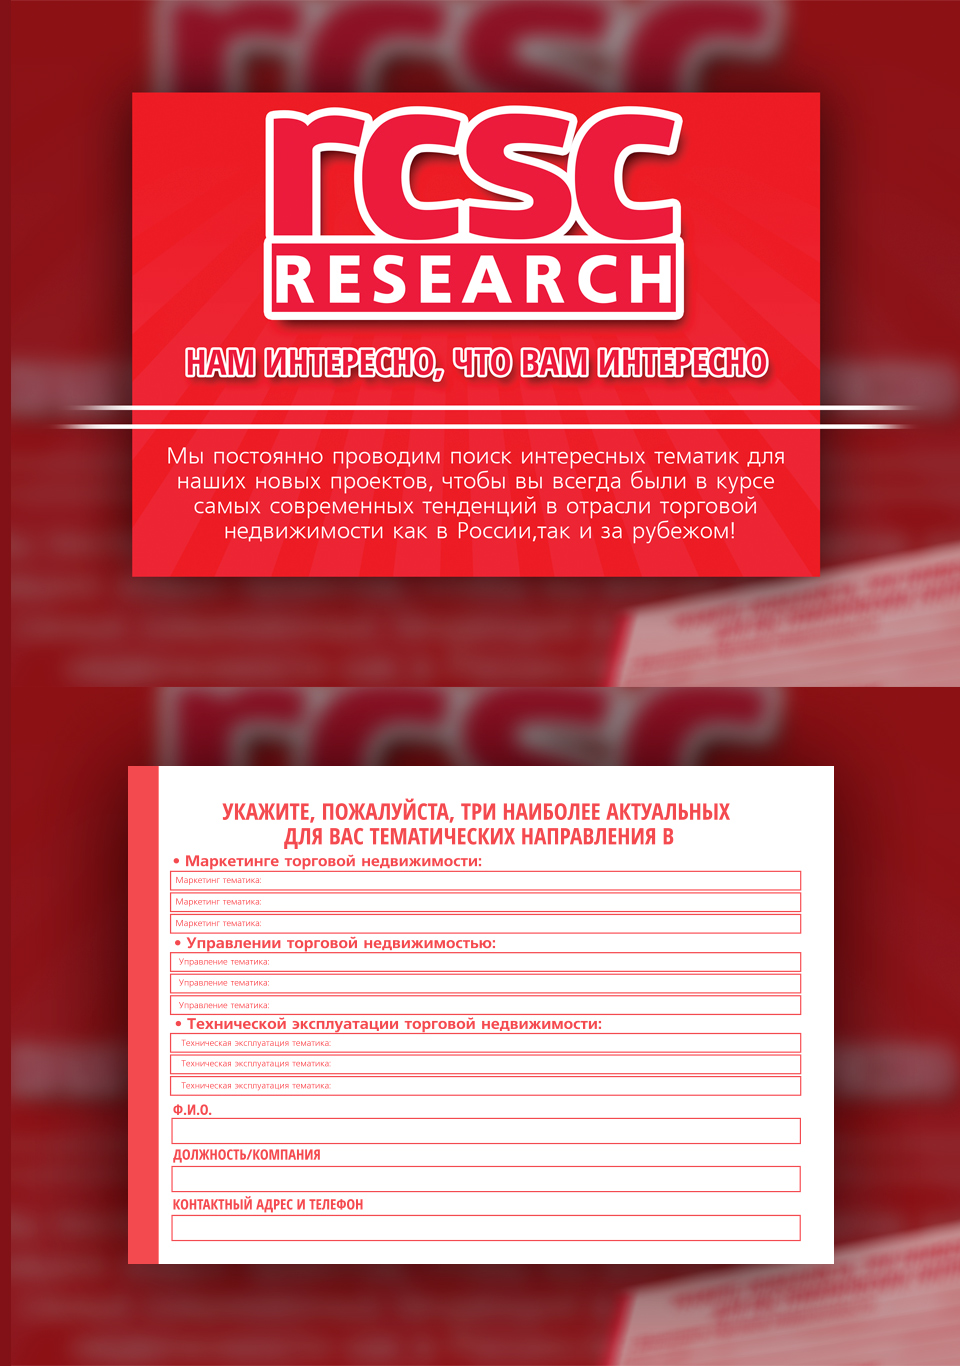 RCRC Research